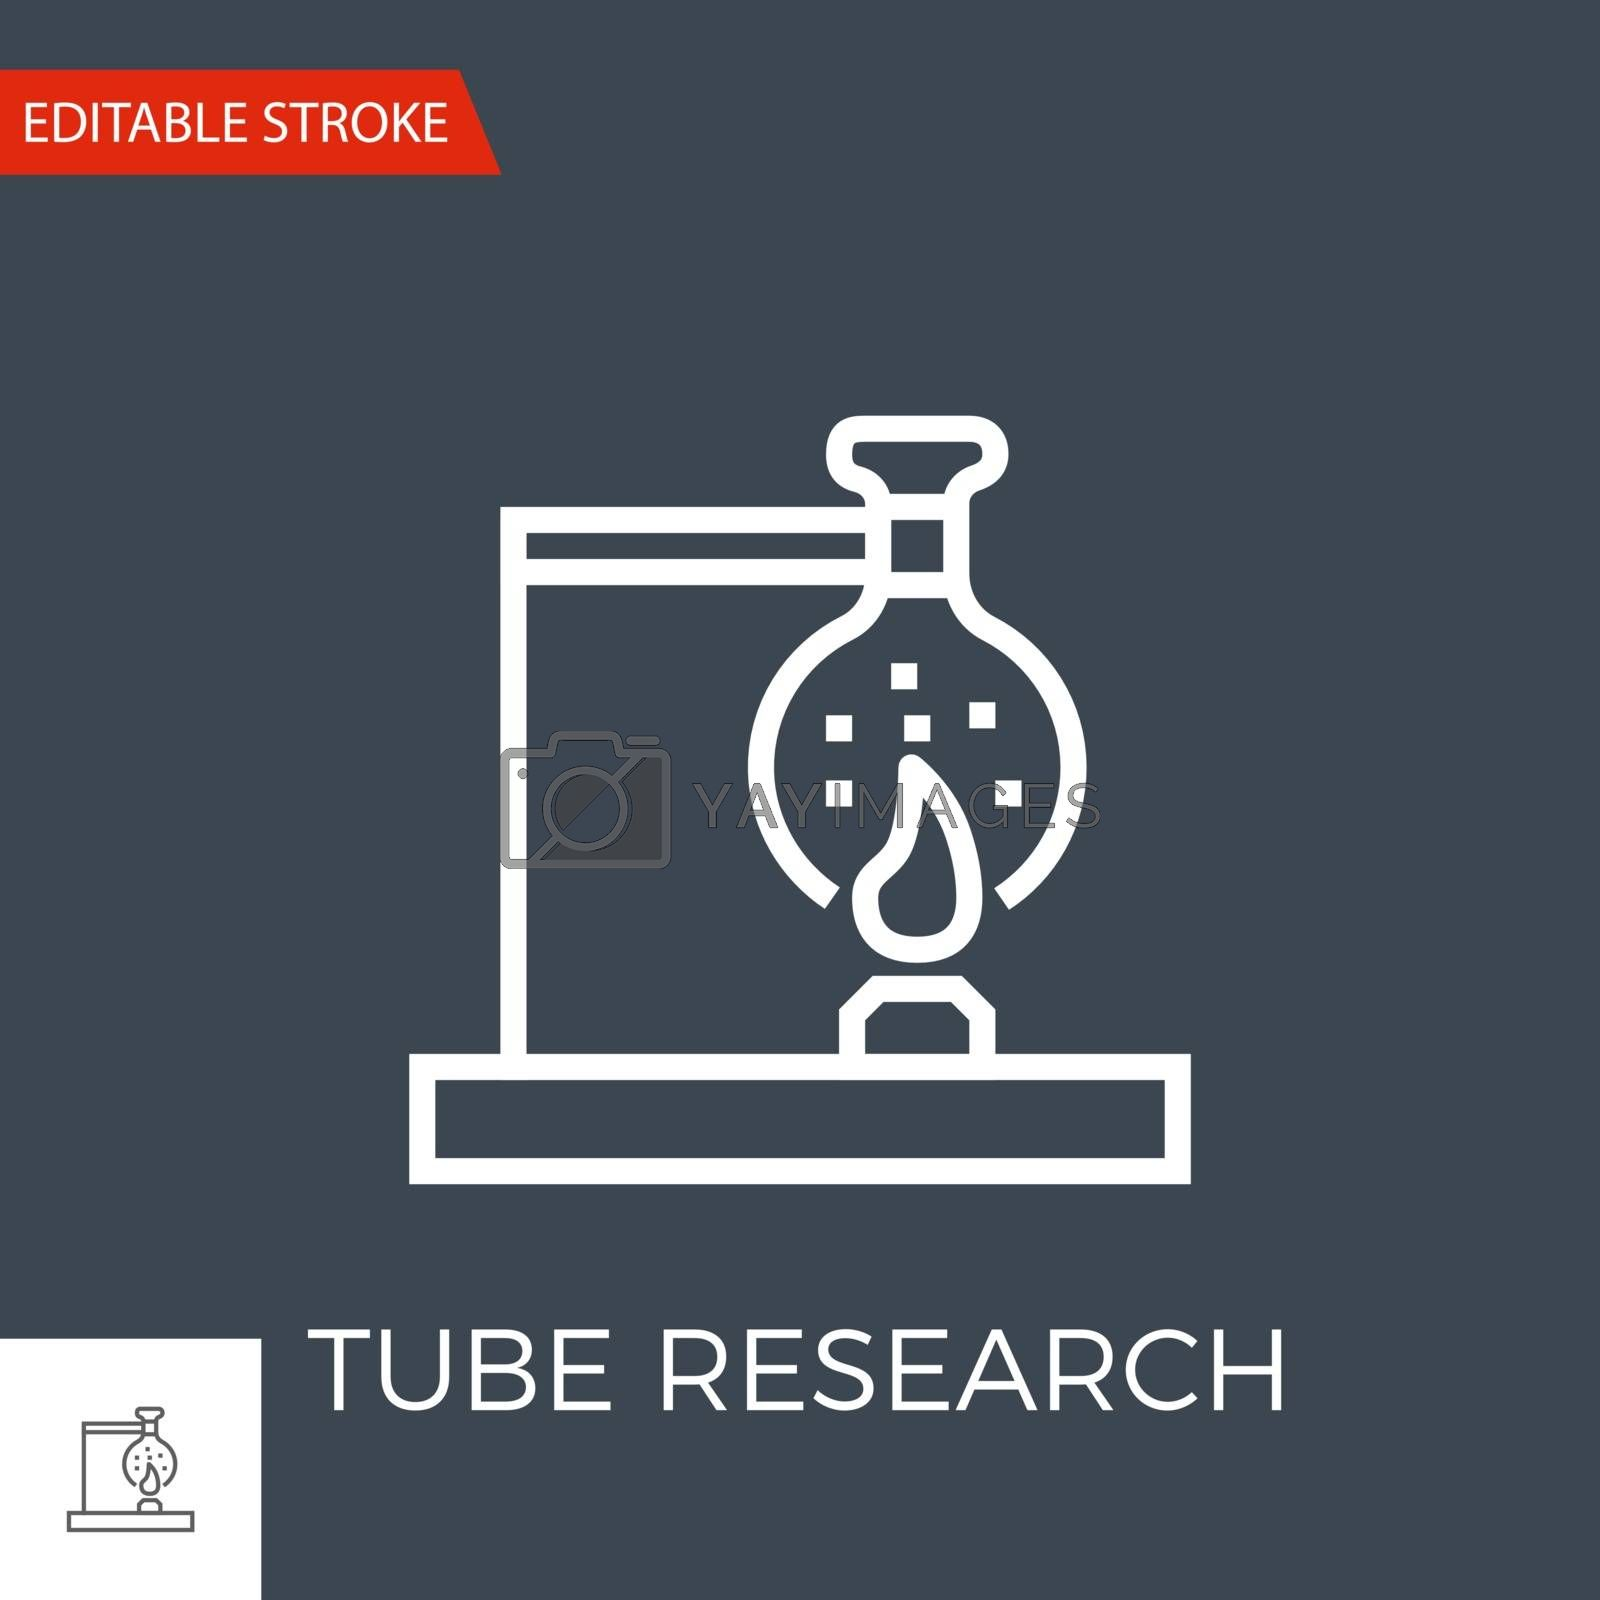 Tube Research Thin Line Vector Icon. Flat Icon Isolated on the Black Background. Editable Stroke EPS file. Vector illustration.